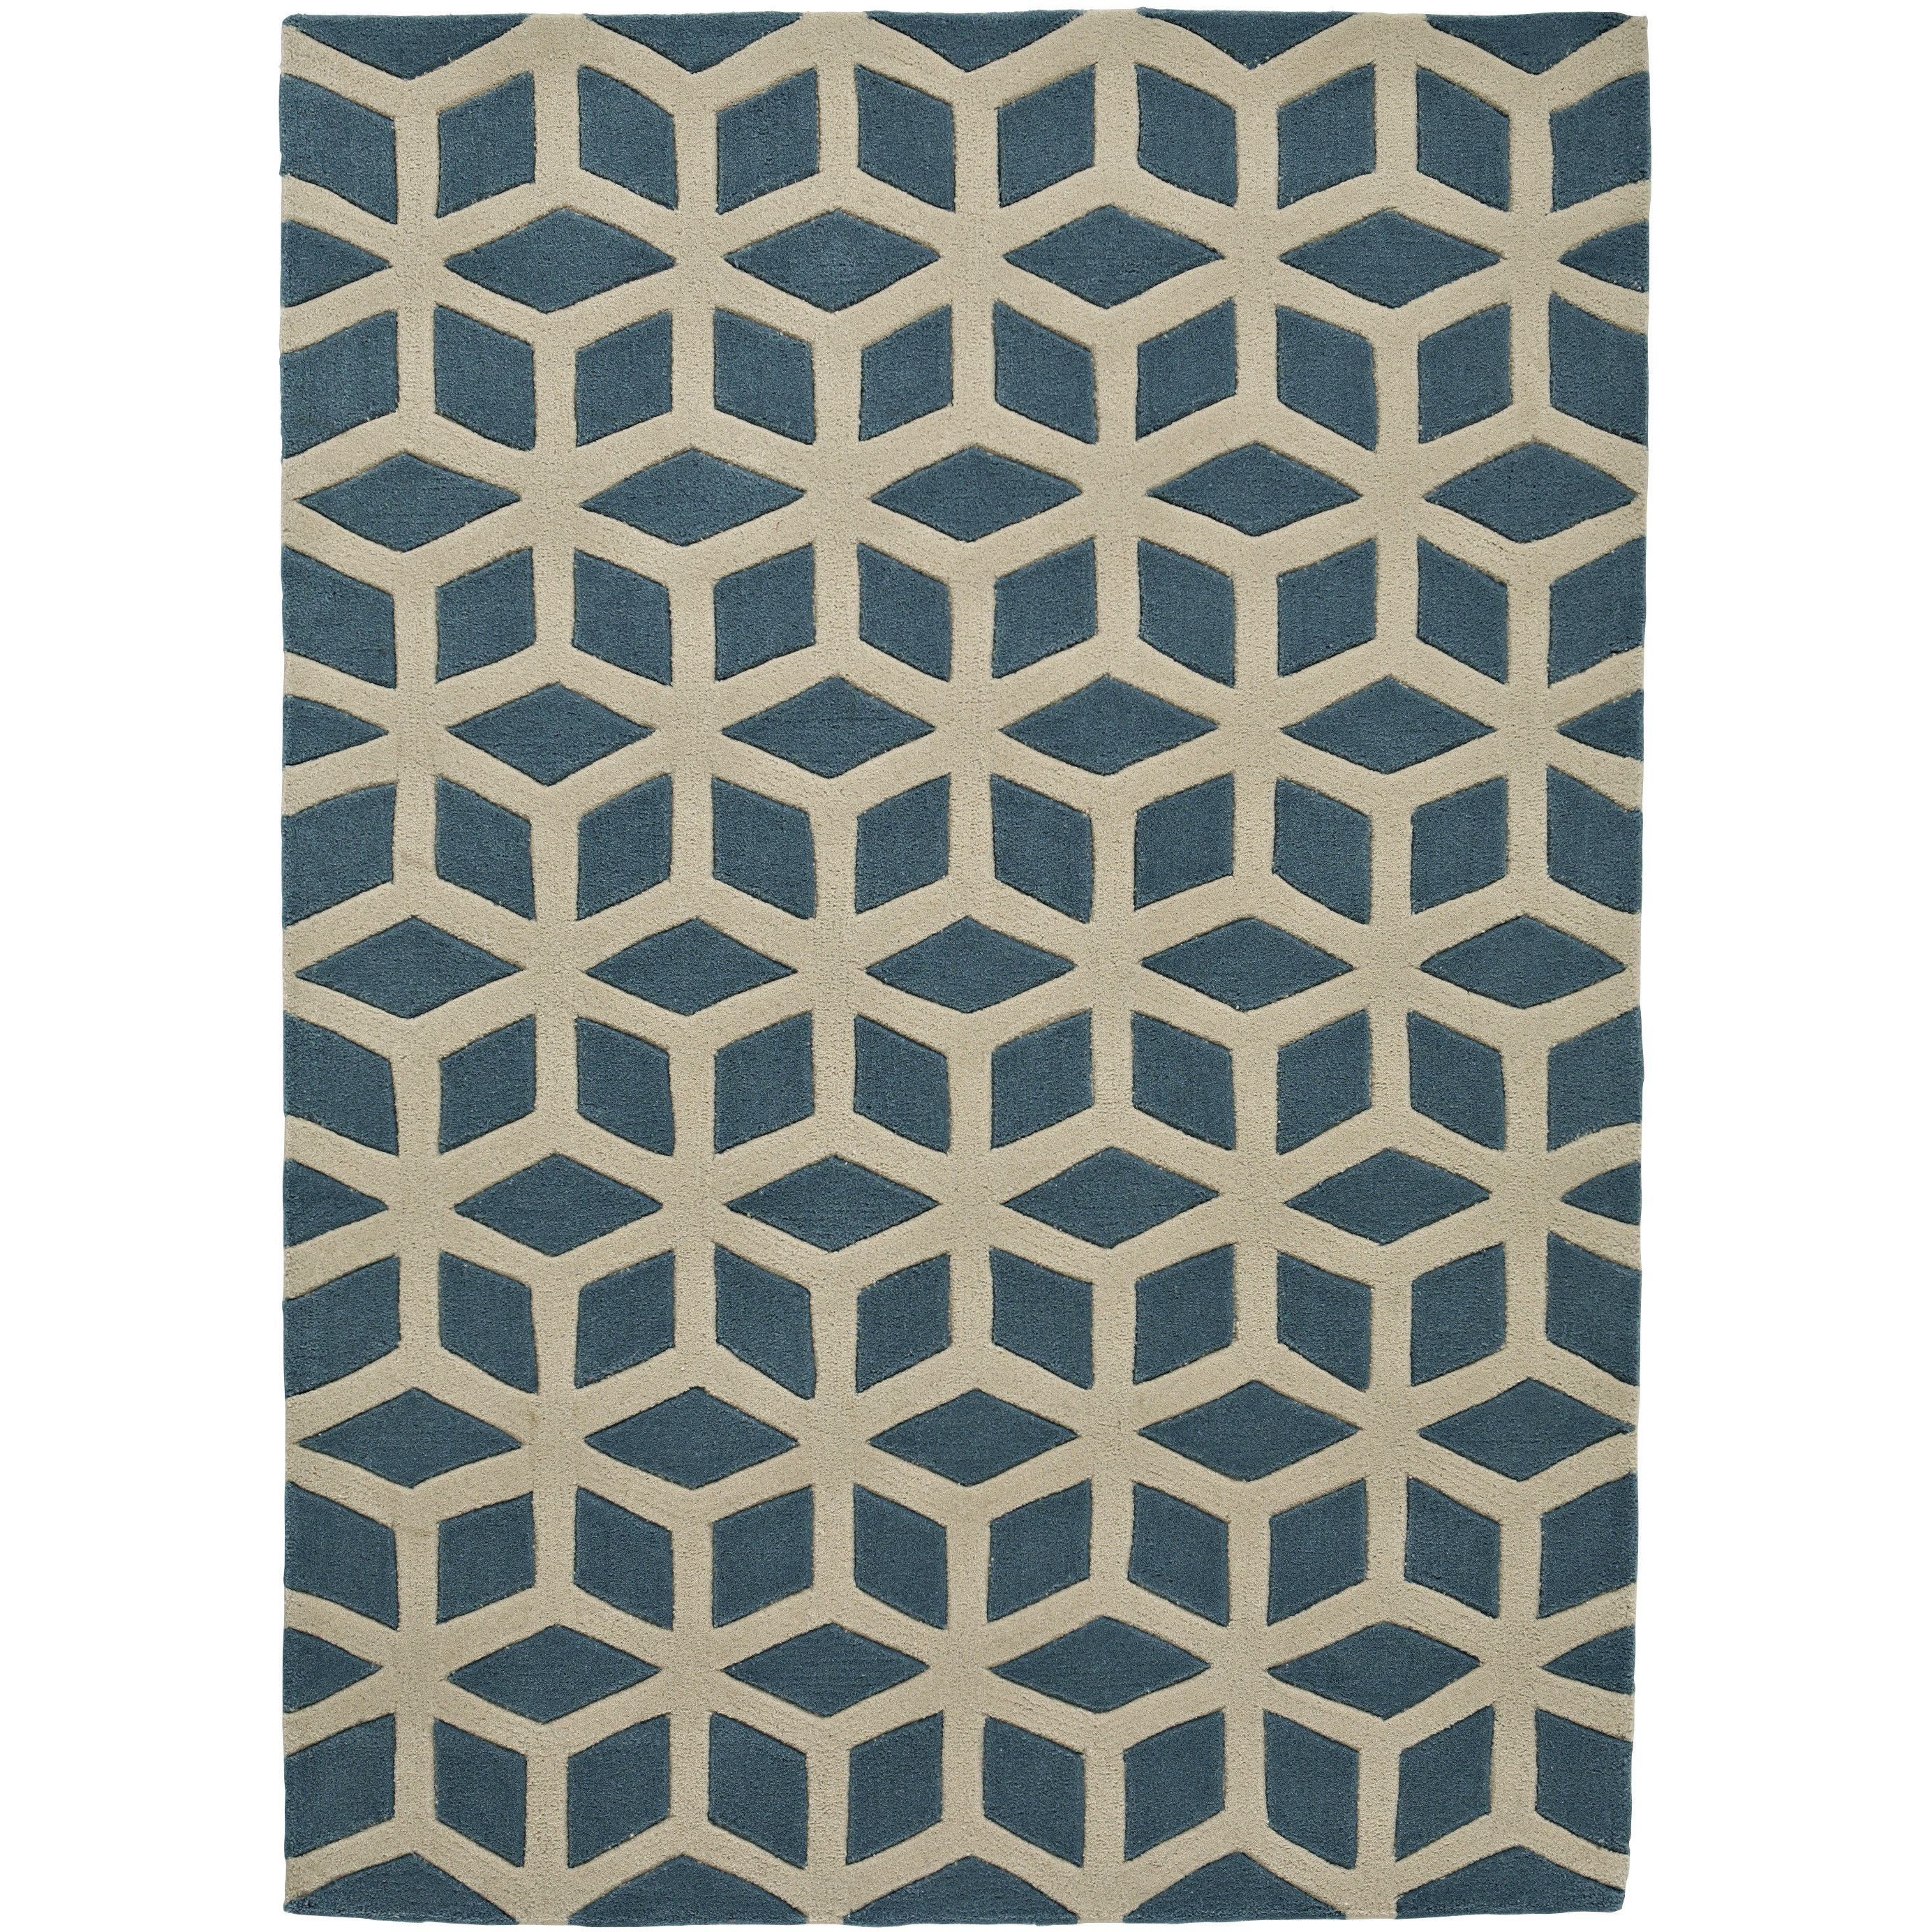 Think Rugs Hong Kong Hand Tufted Blue Area Rug Wayfair Co Uk